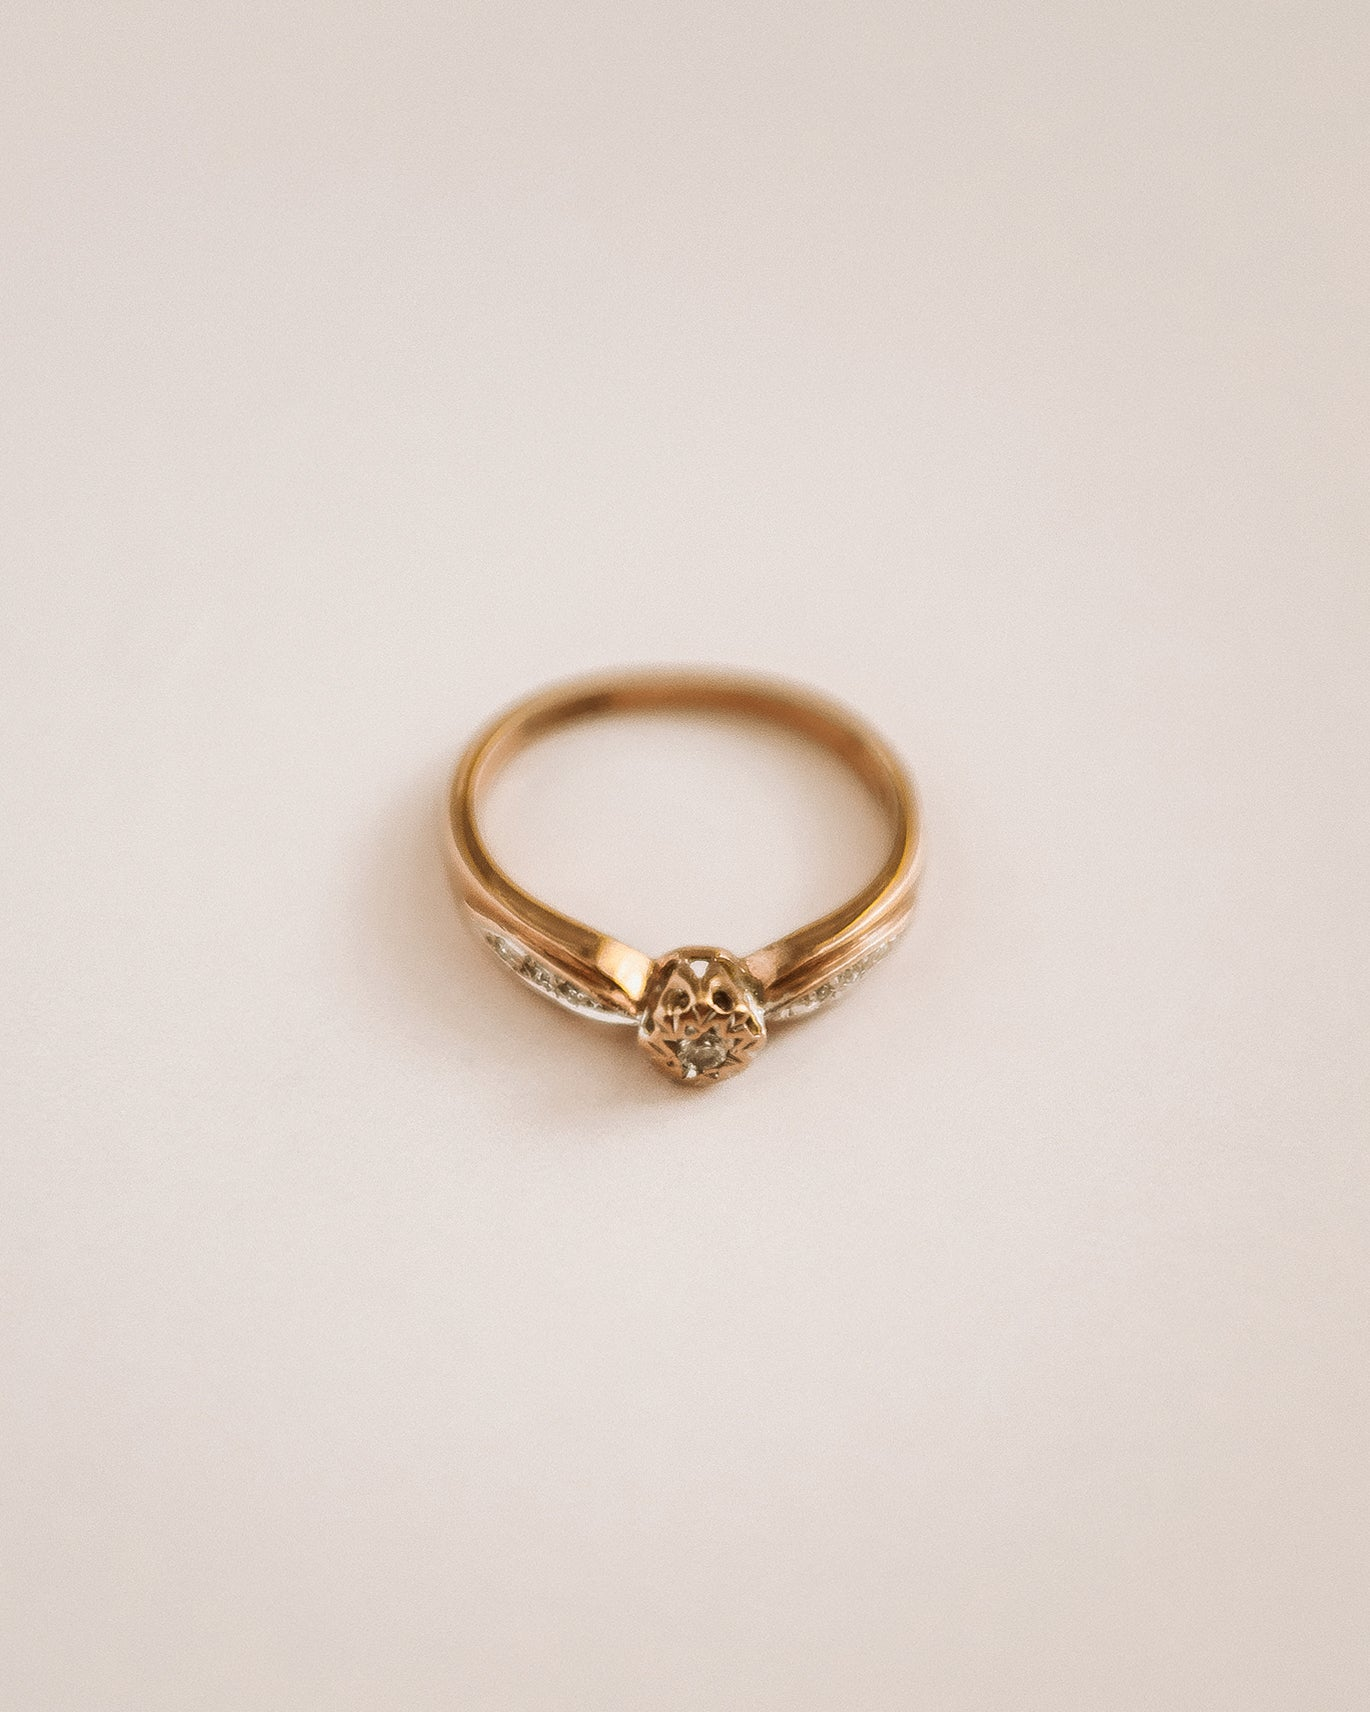 Image of Lucy 9ct Gold Diamond Ring